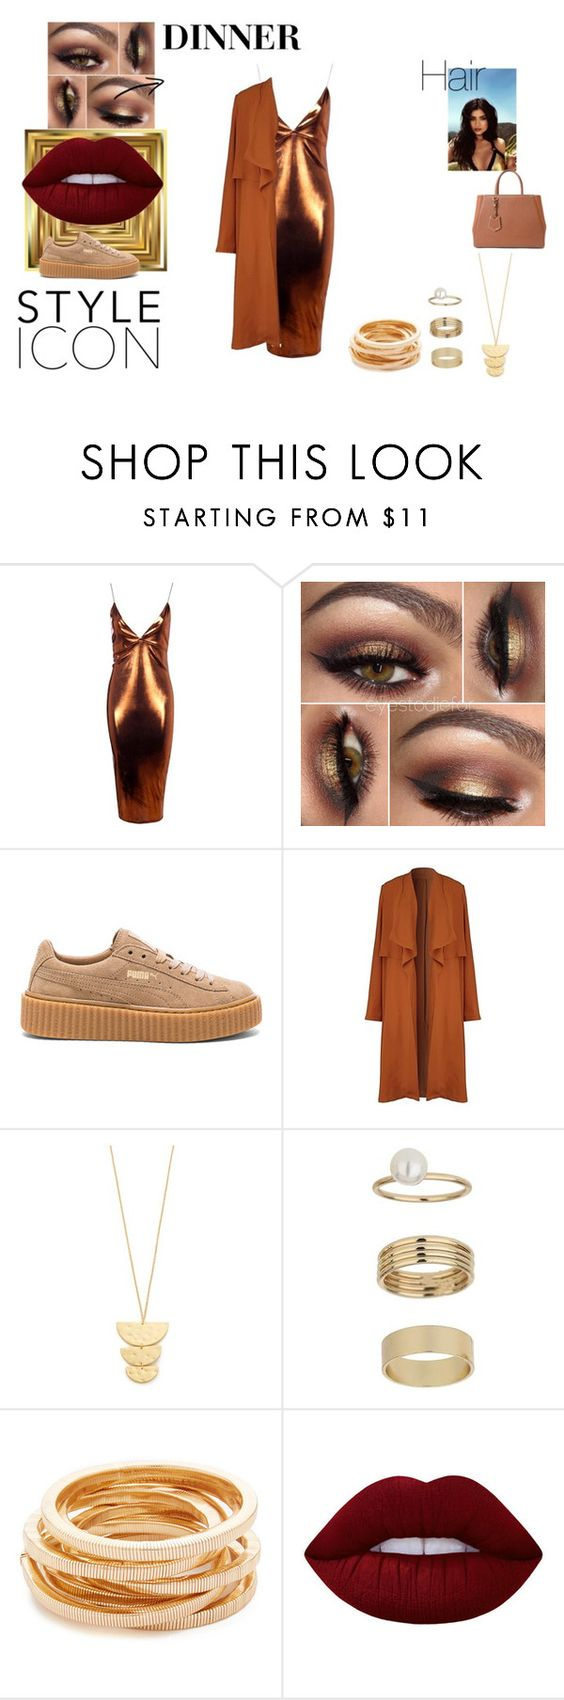 """Dinner: NY"" by danmoreira4 ❤ liked on Polyvore featuring Boohoo, Puma, Topshop, Gorjana, Miss Selfridge, Kenneth Jay Lane, Lime Crime and Fendi"